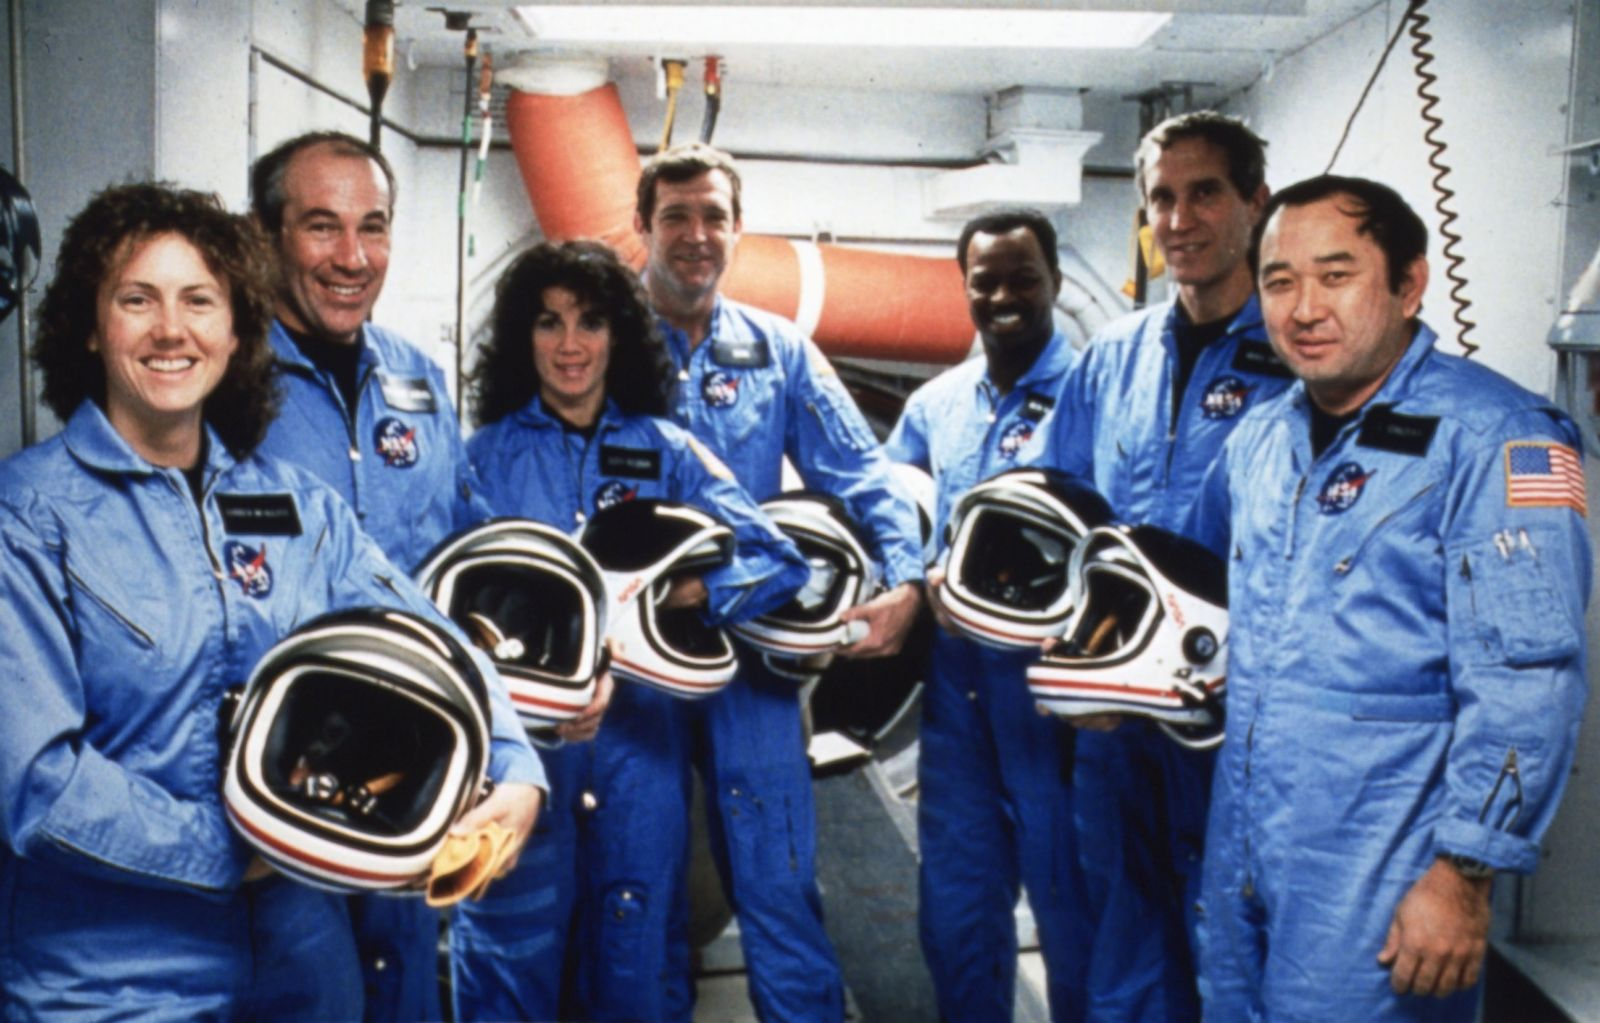 space shuttle challenger accident report - photo #32